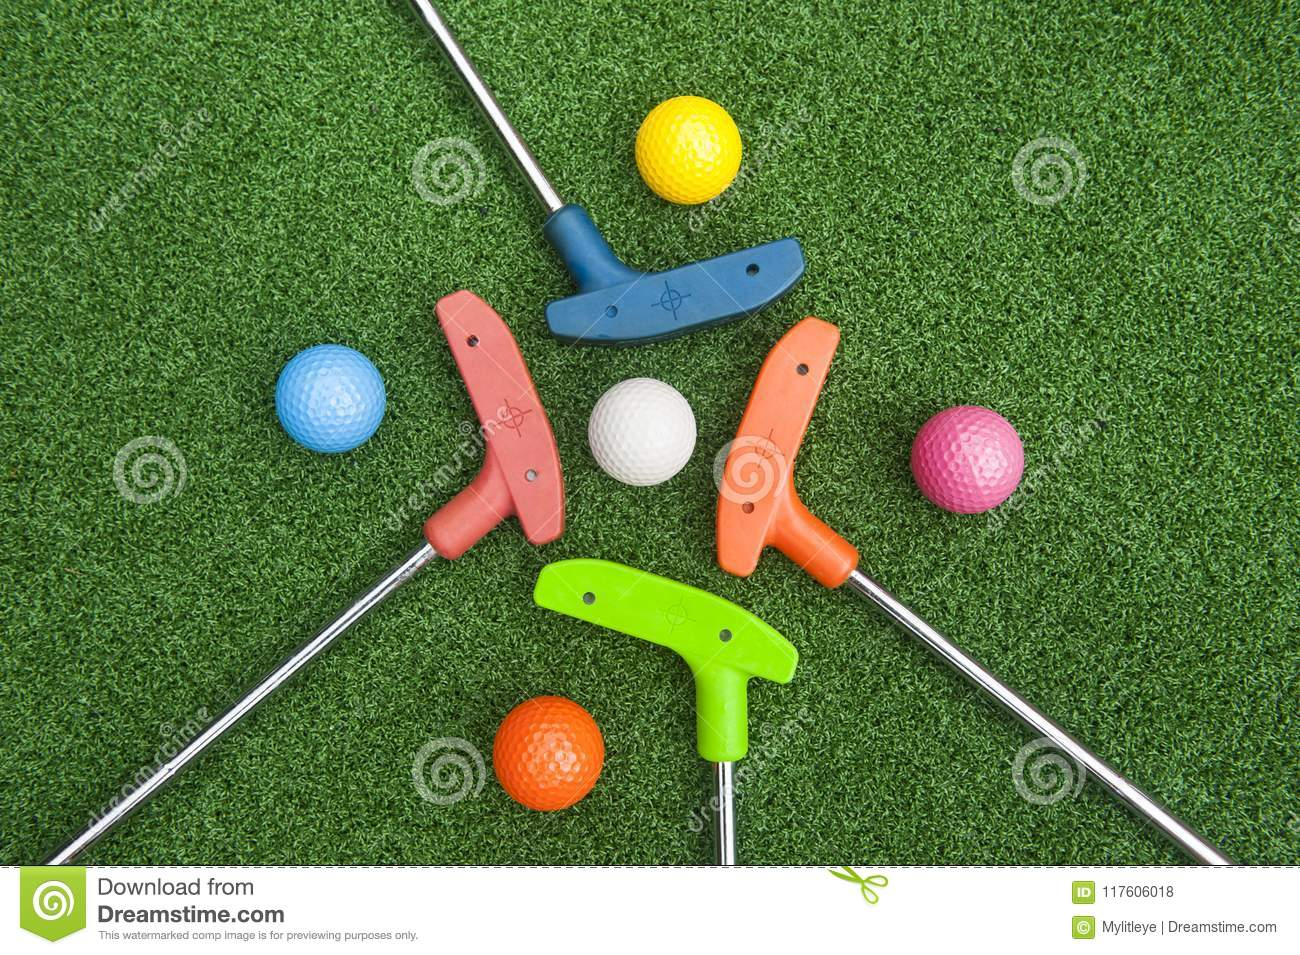 Four Mini Golf Putters with Balls